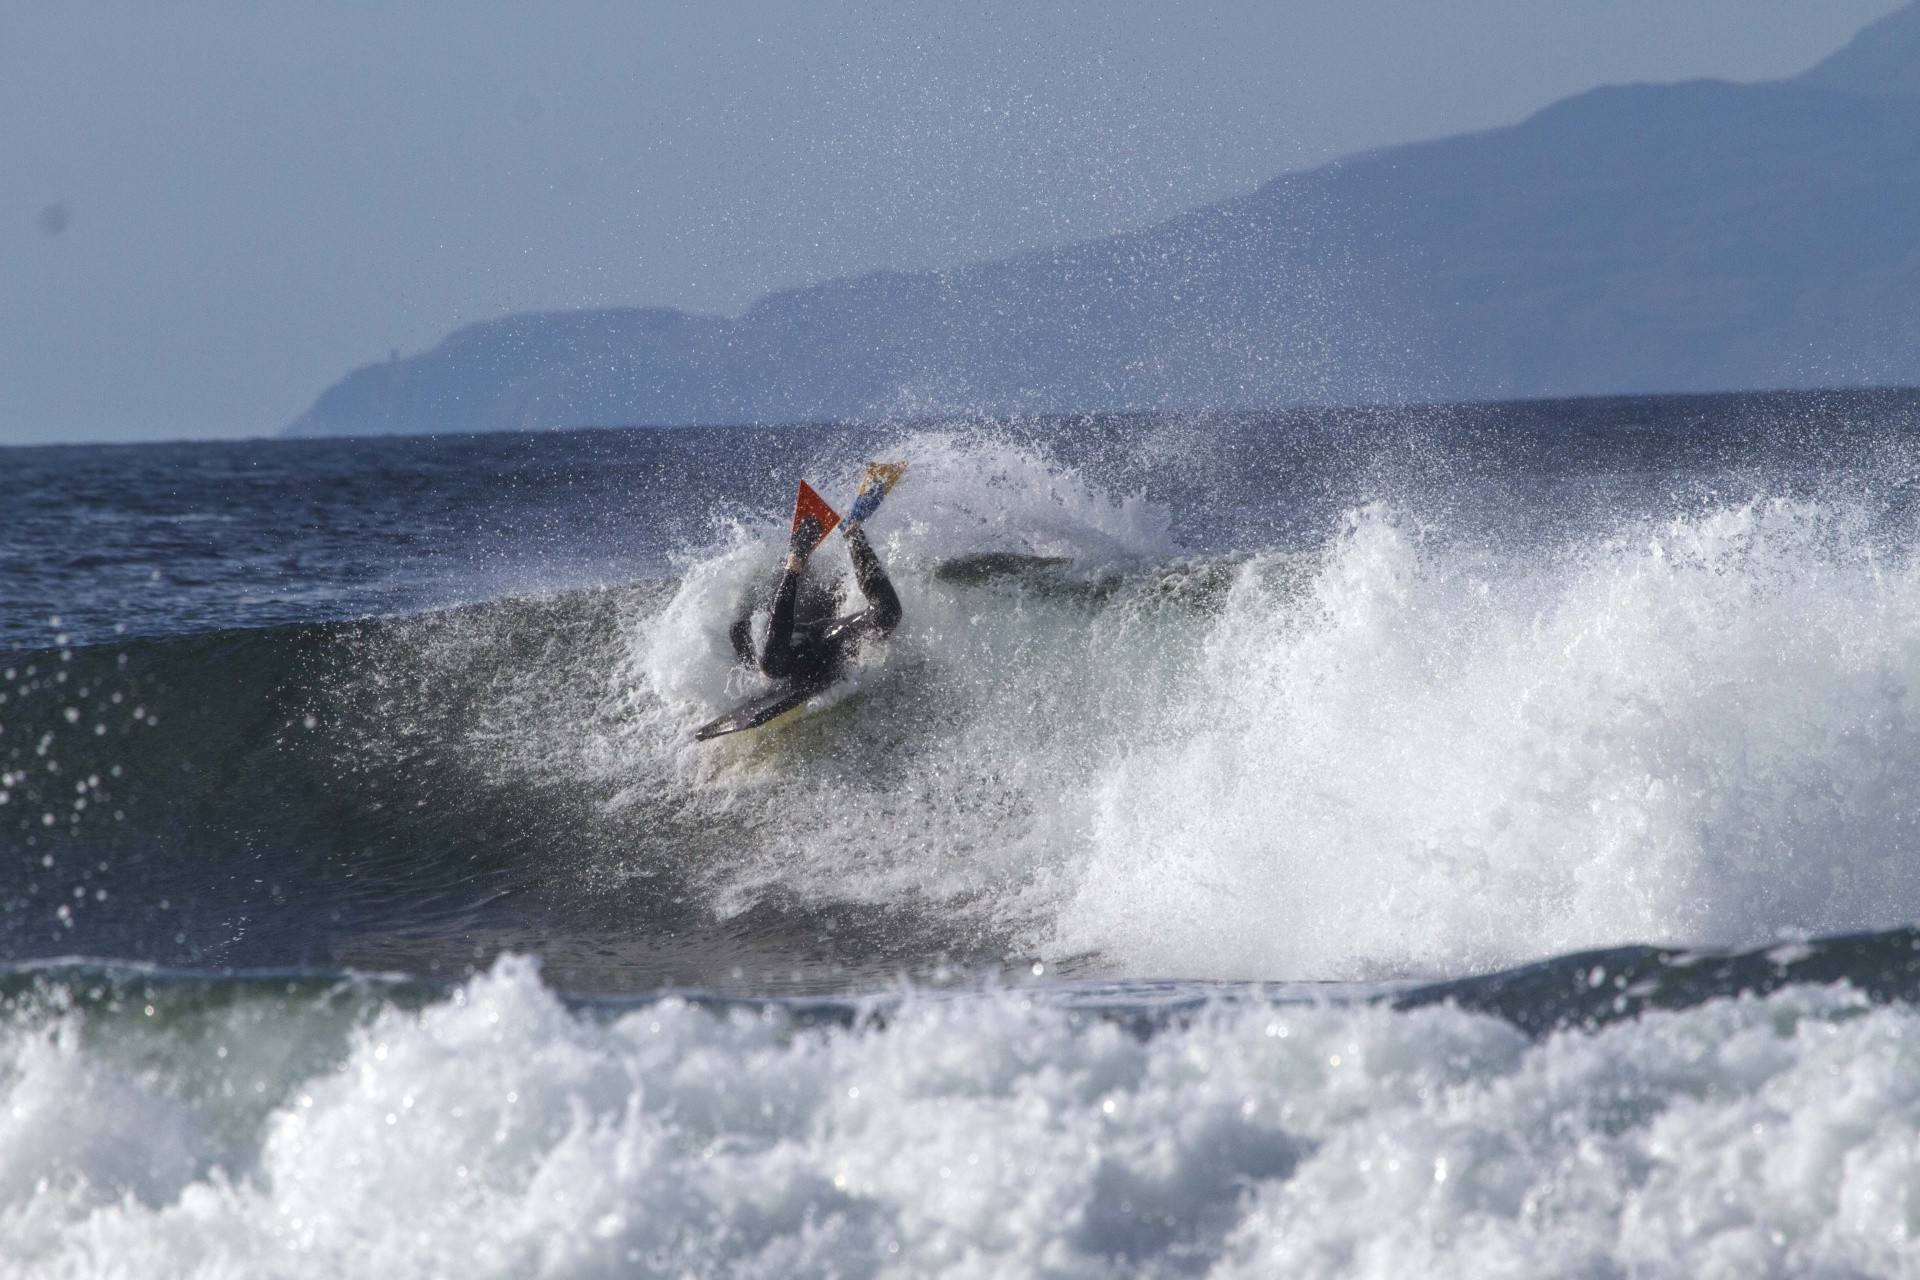 seanpius's photo of Bundoran - The Peak